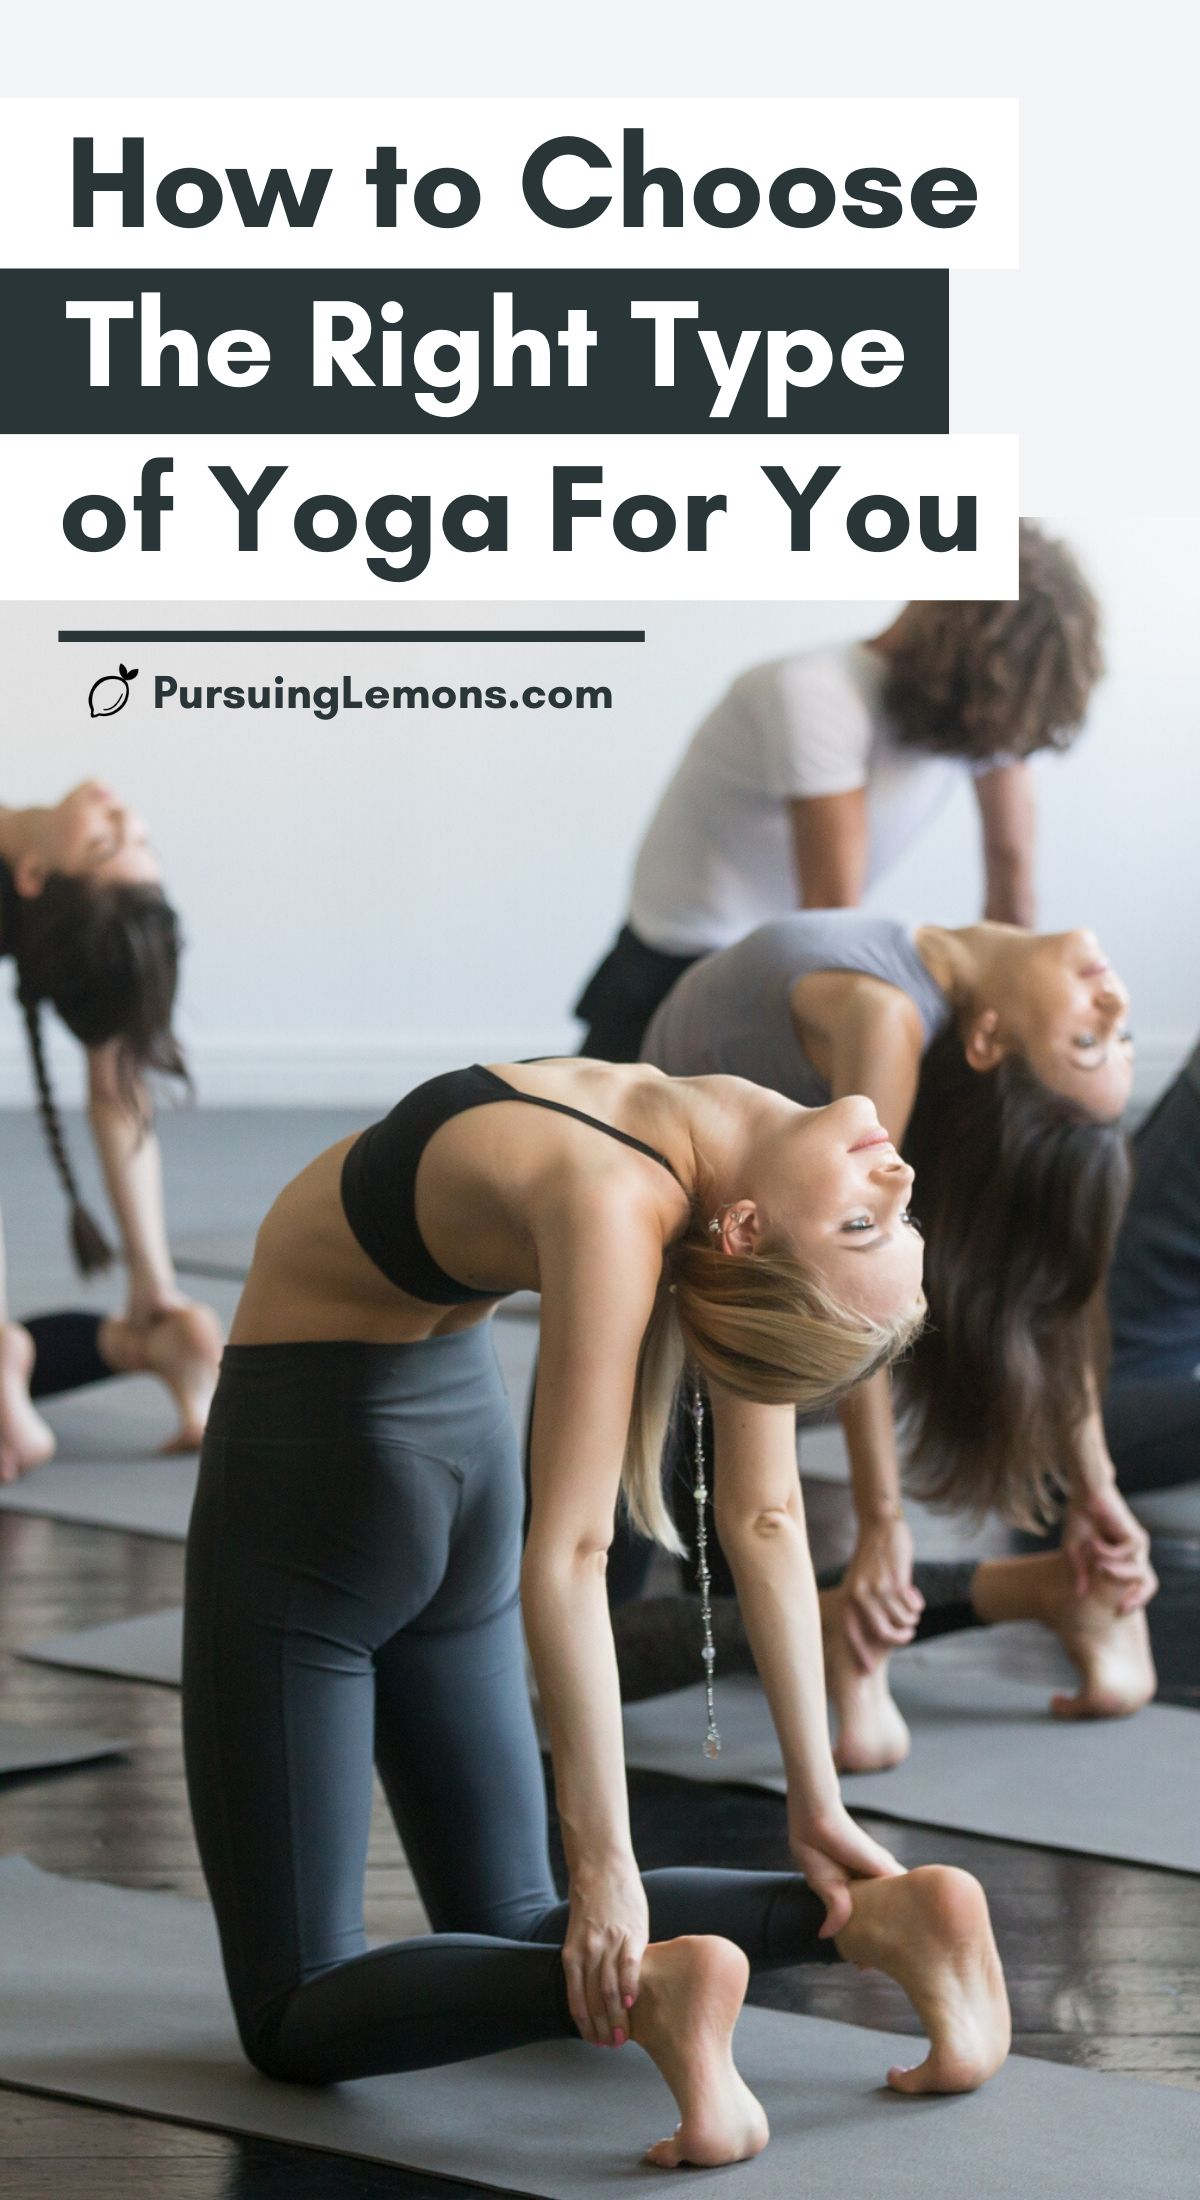 Types of Yoga: How to Choose The Right Type of Yoga For You   Are you a yoga beginner? Here's a comprehensive guide to some of the most popular styles of yoga. By having a good understanding of each type of yoga style, you'll be able to choose which yoga discipline and yoga class suit you best.  #yoga #typesofyoga #yogastyles #yogadisciplines